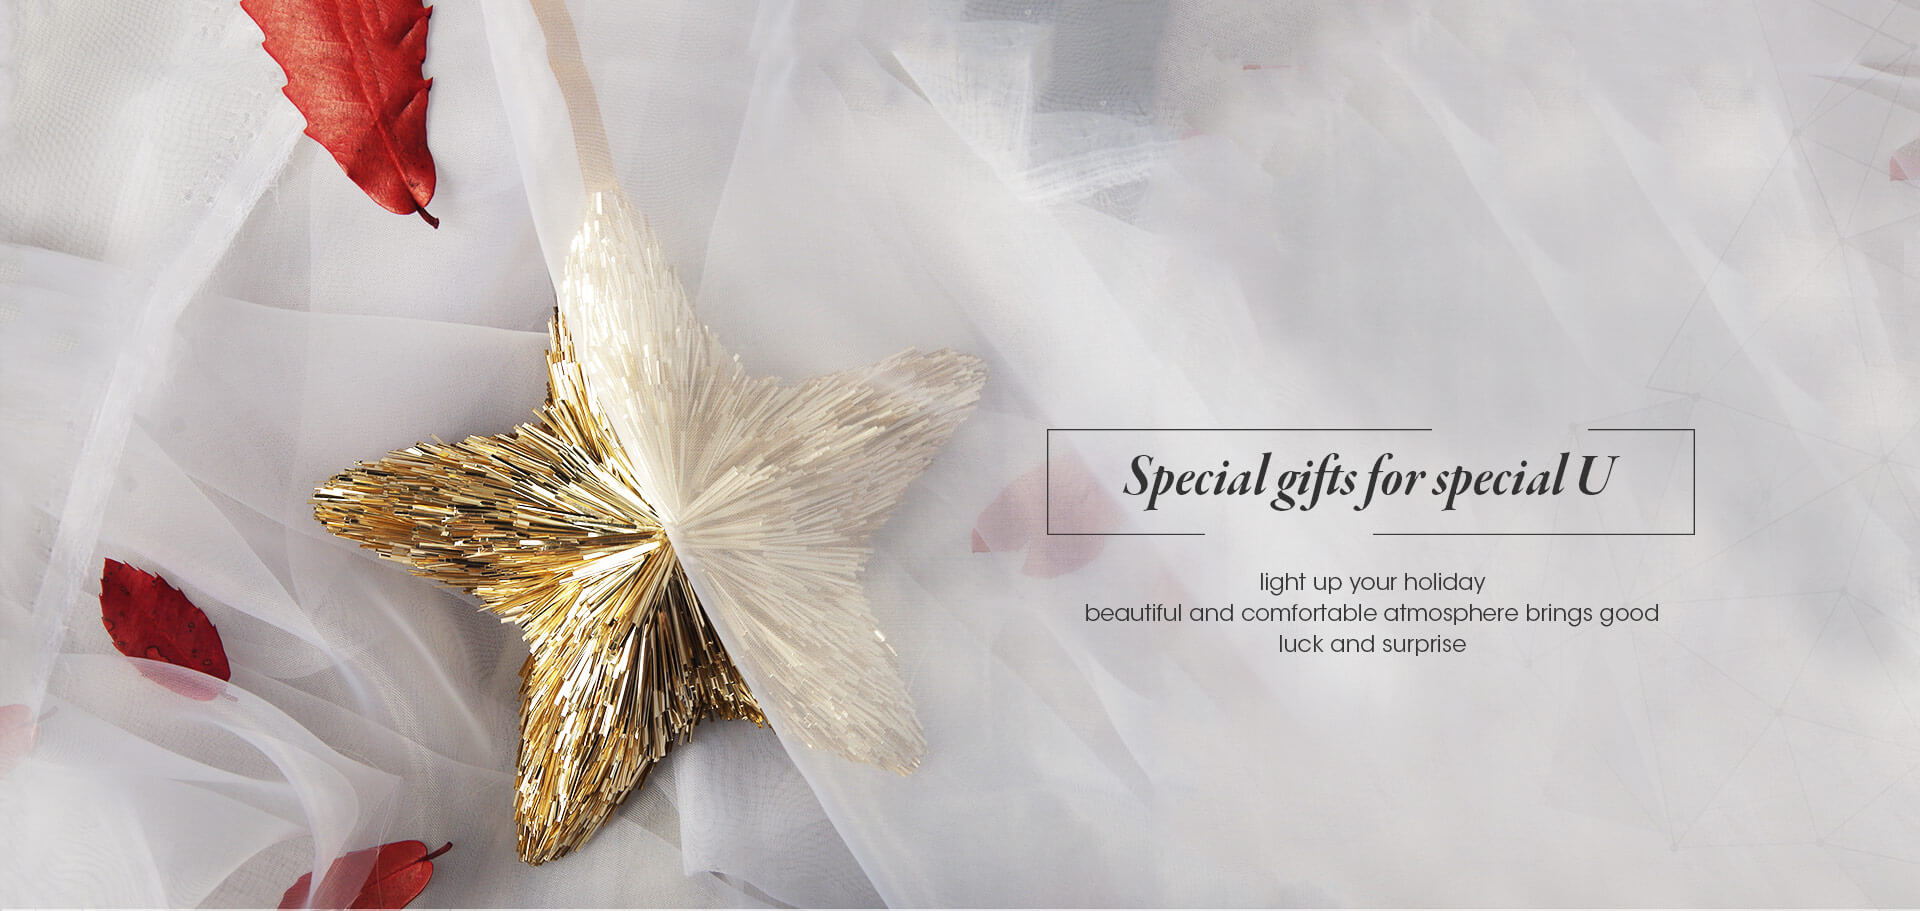 Special gifts for special U